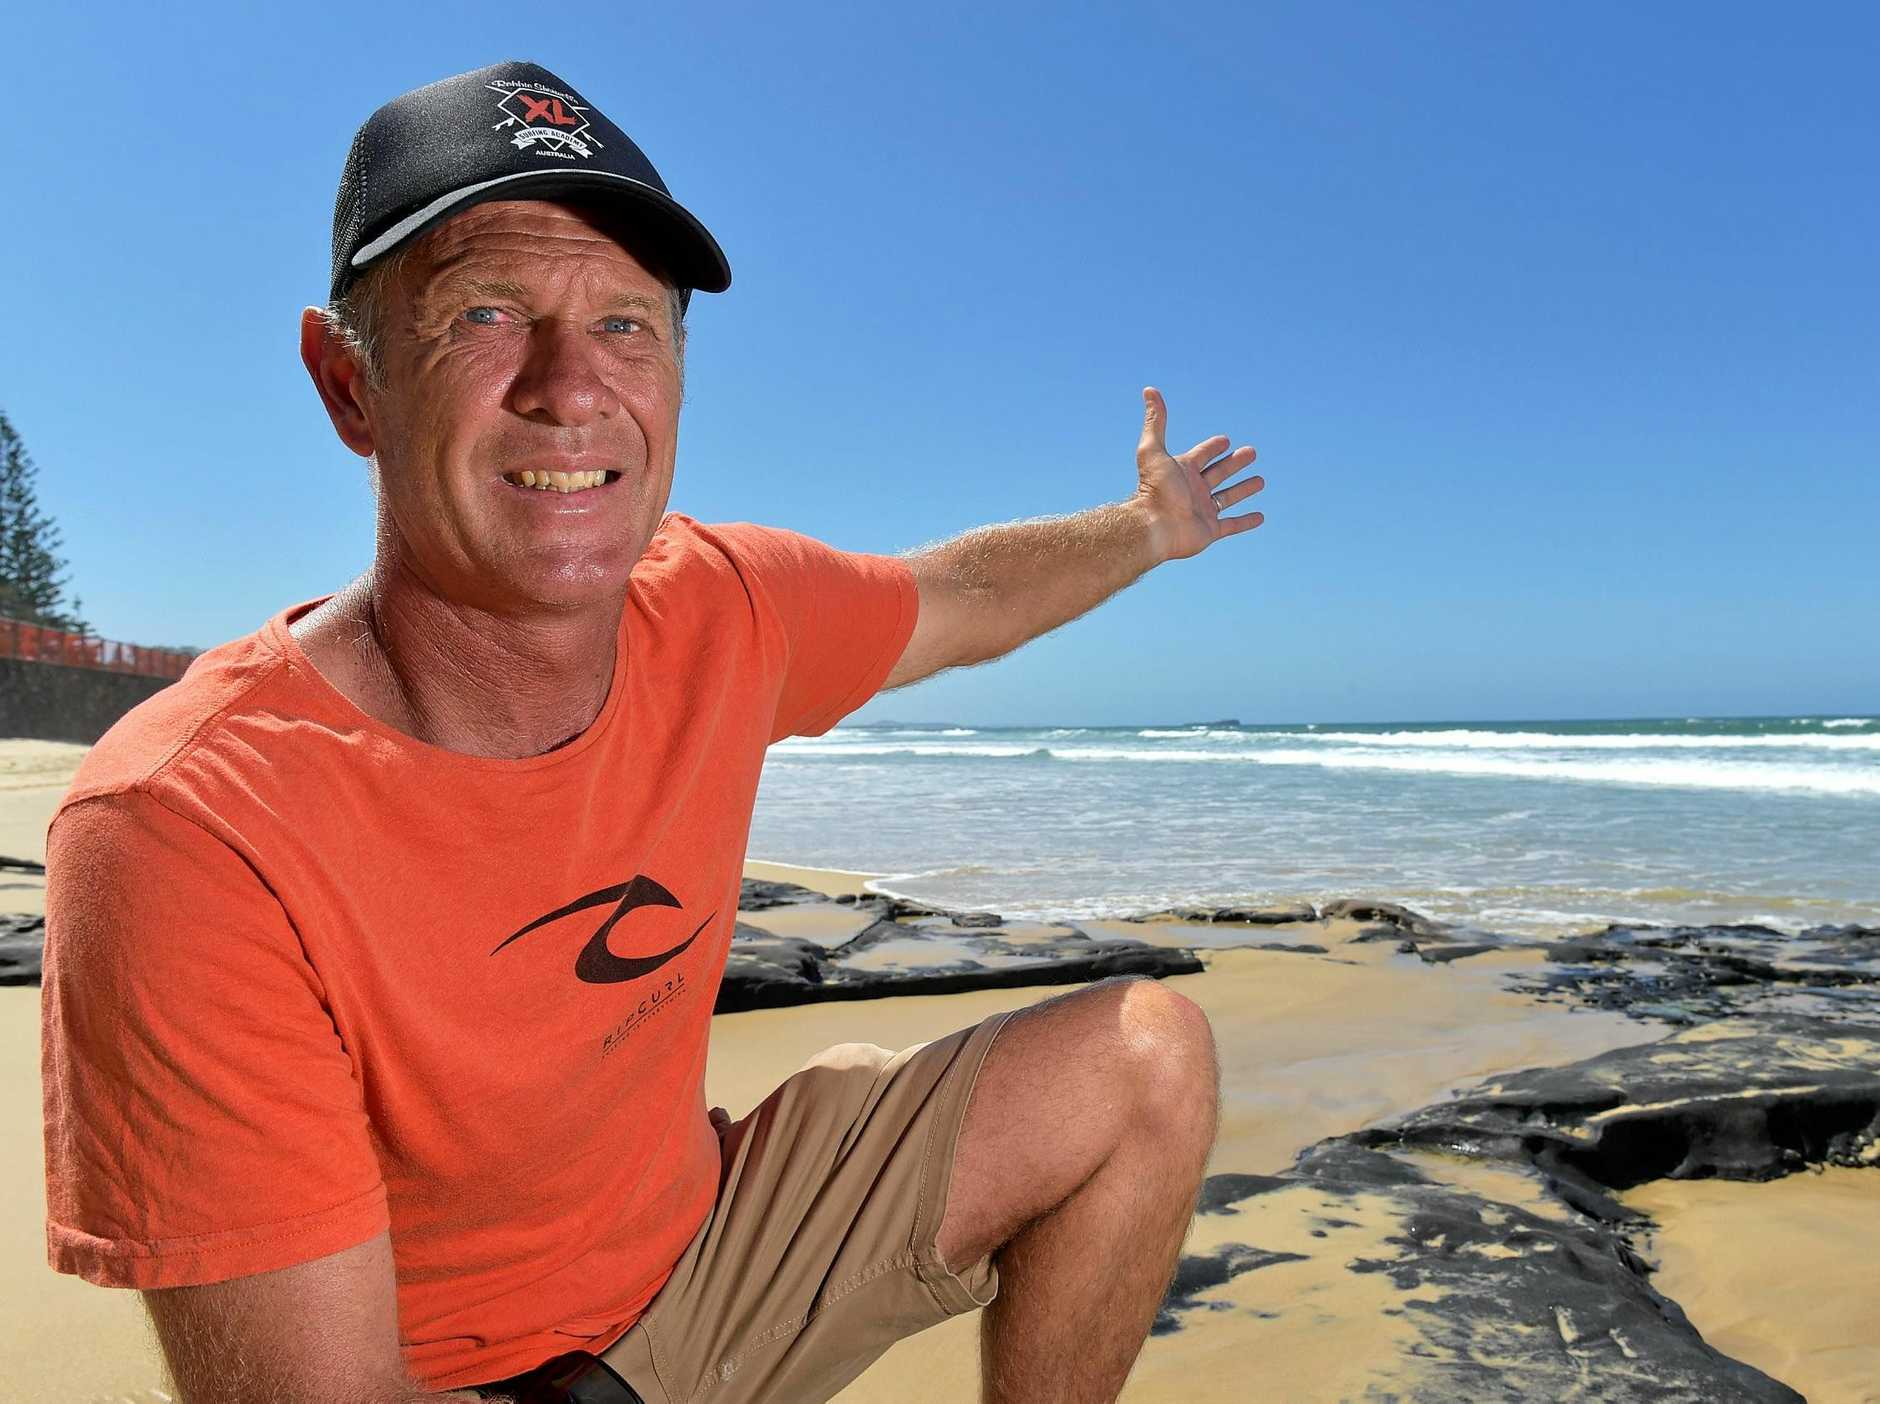 Surf instructor and ex-pro Robbie Sherwell said he has spoken to countless people about surf safety, but the message just isn't getting through.